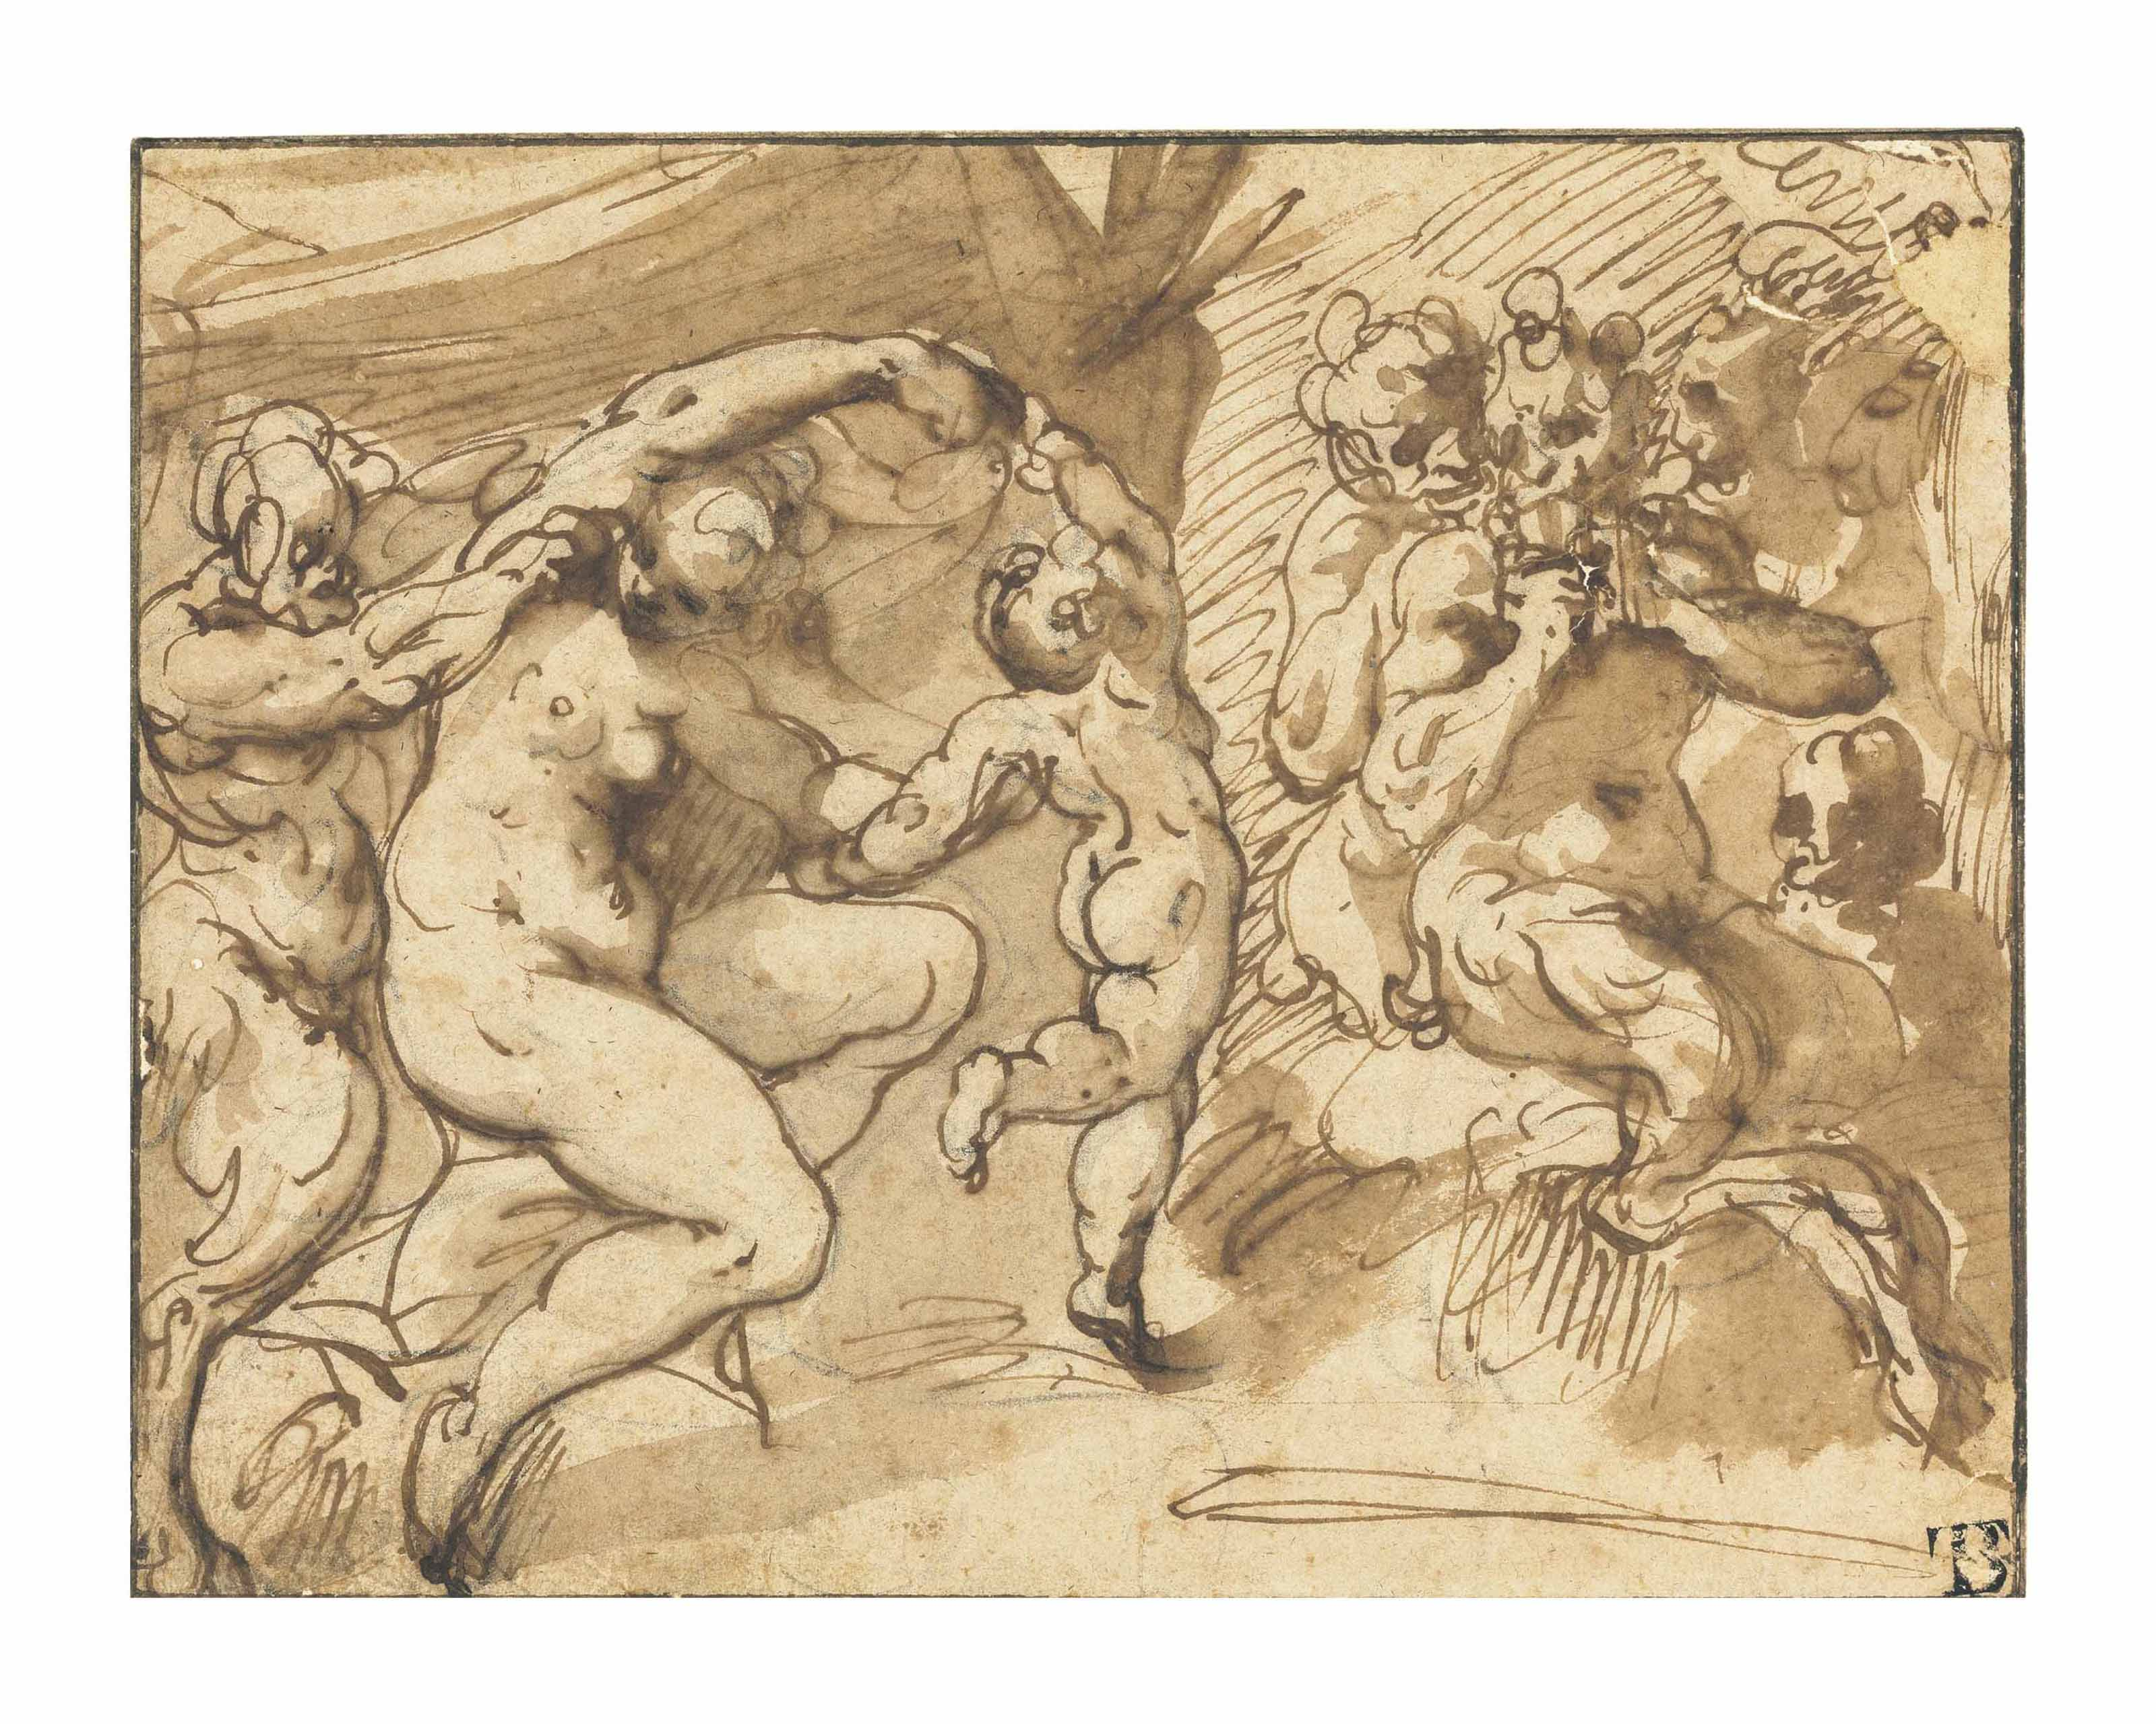 A bacchanal with Venus and Cupid, Pan playing his pipes with satyrs